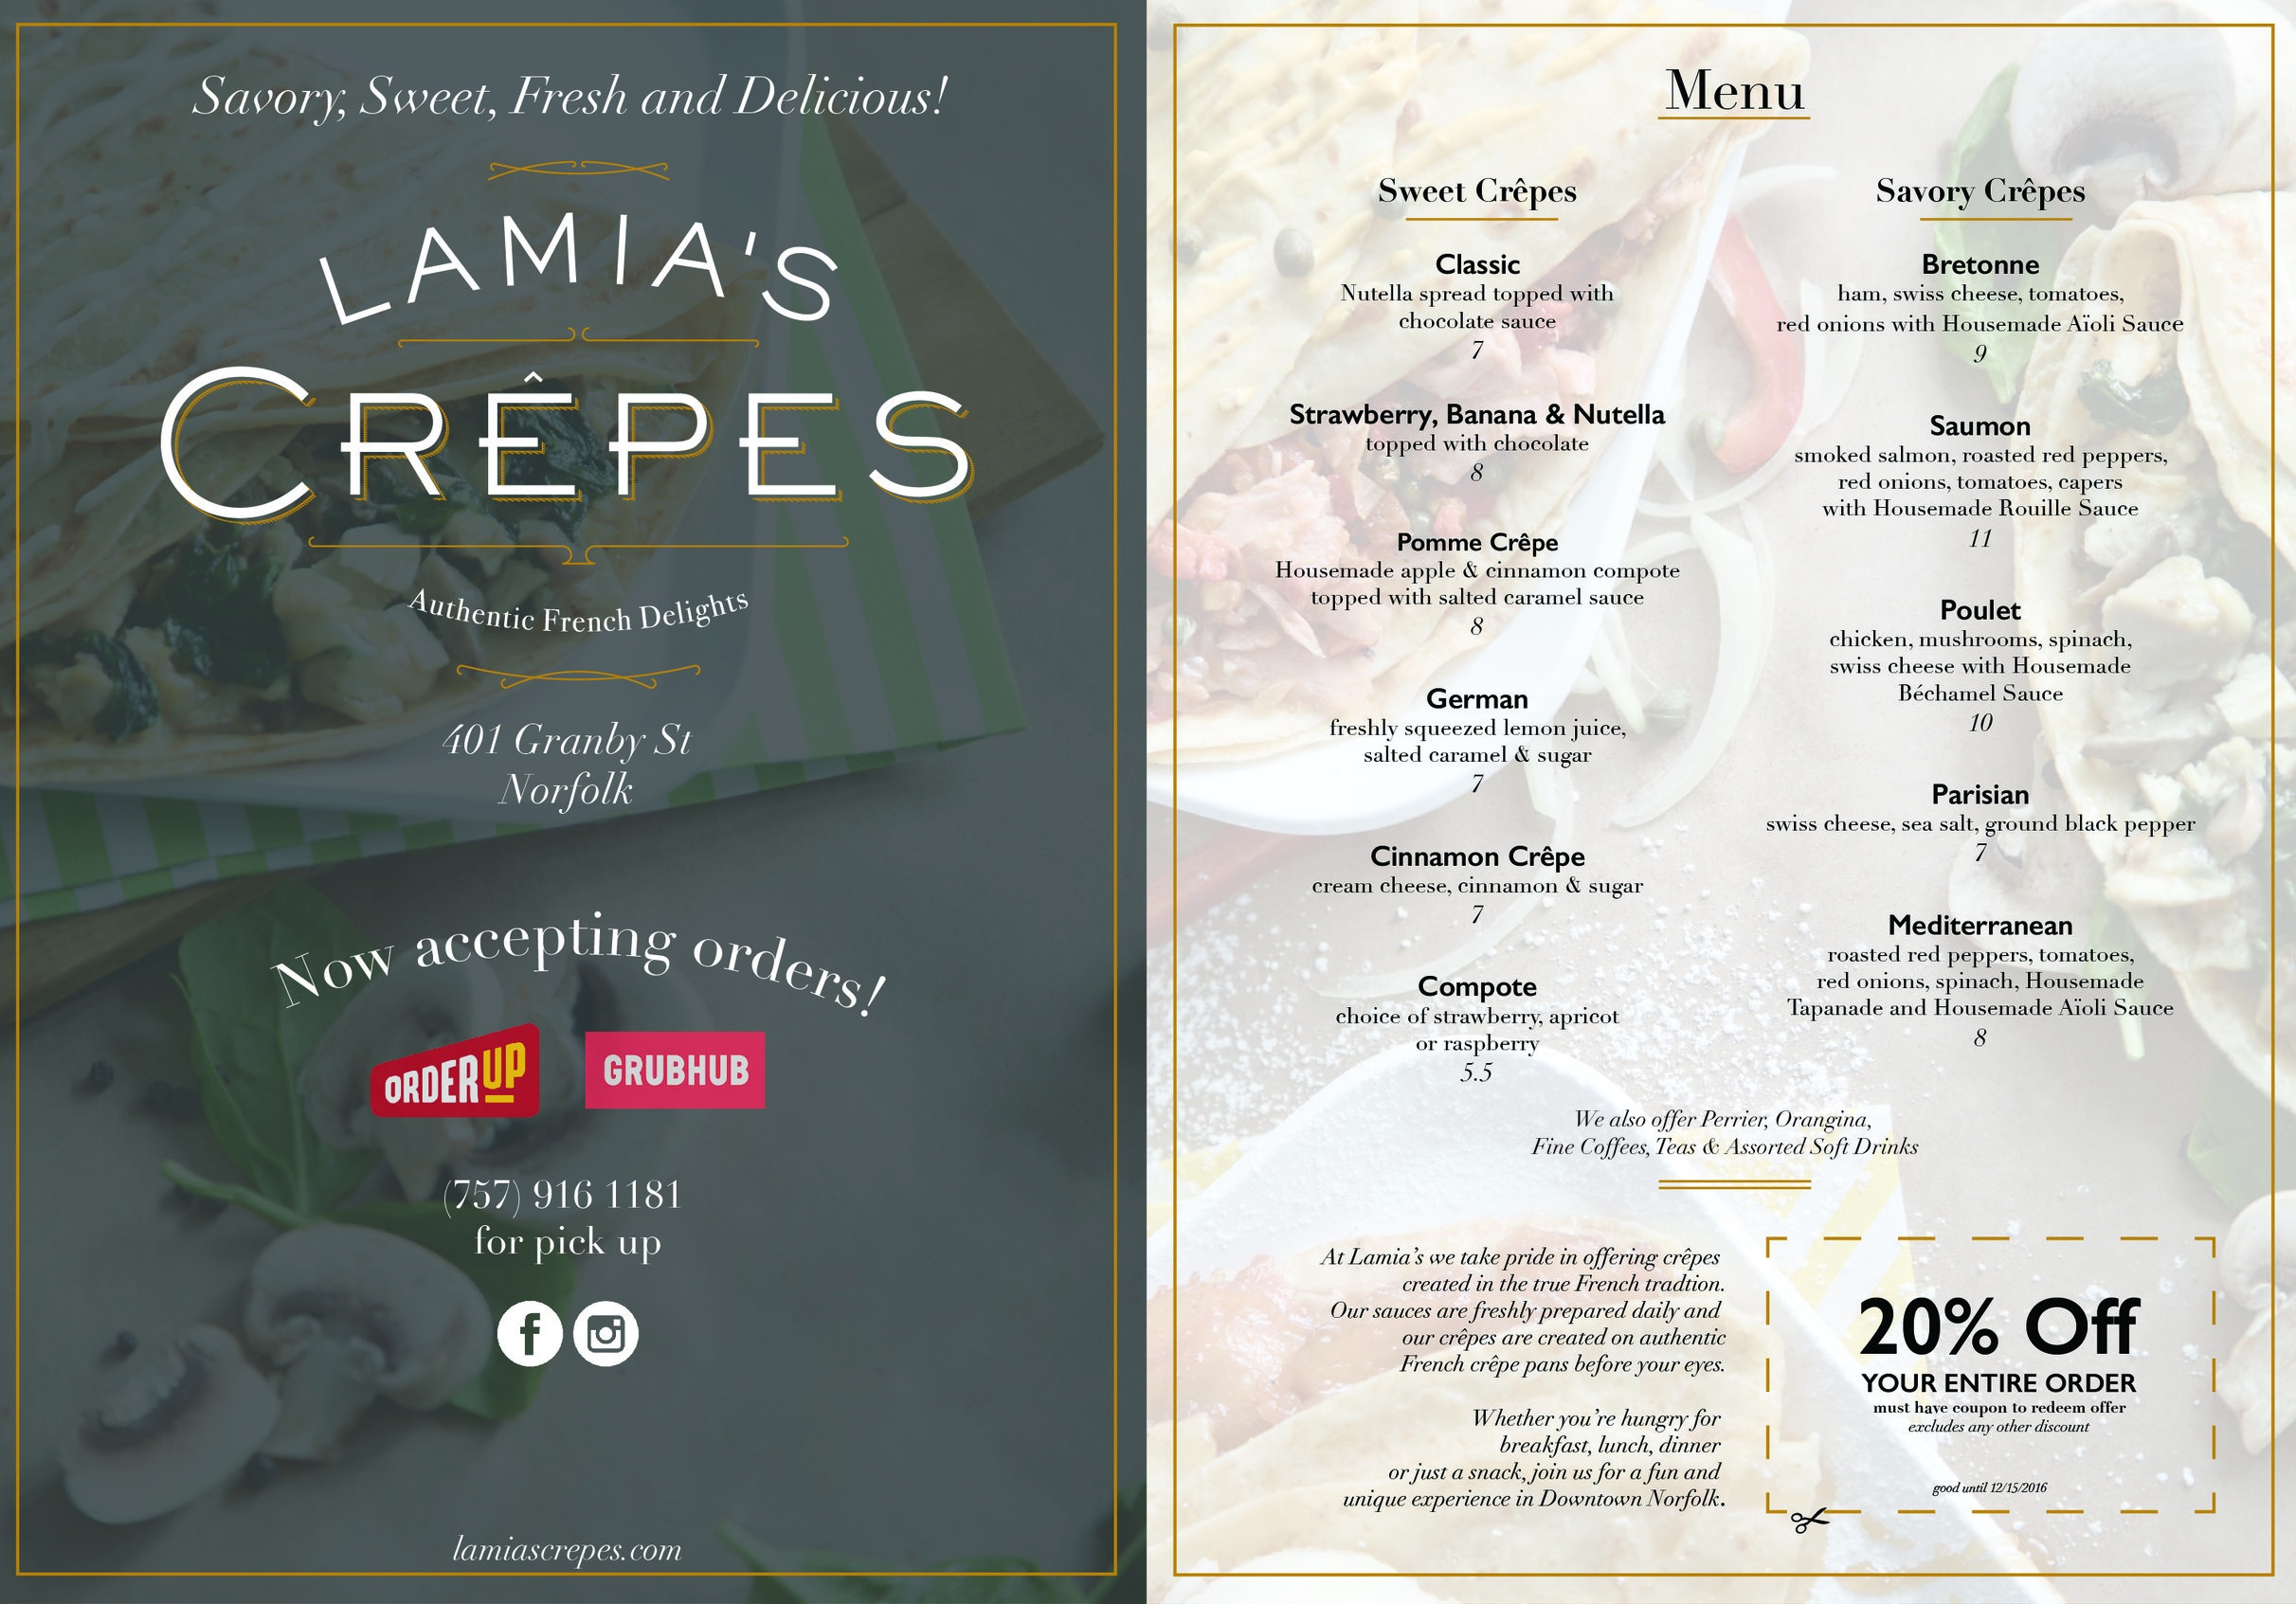 LamiasCrepes_flyer_mailer.jpg